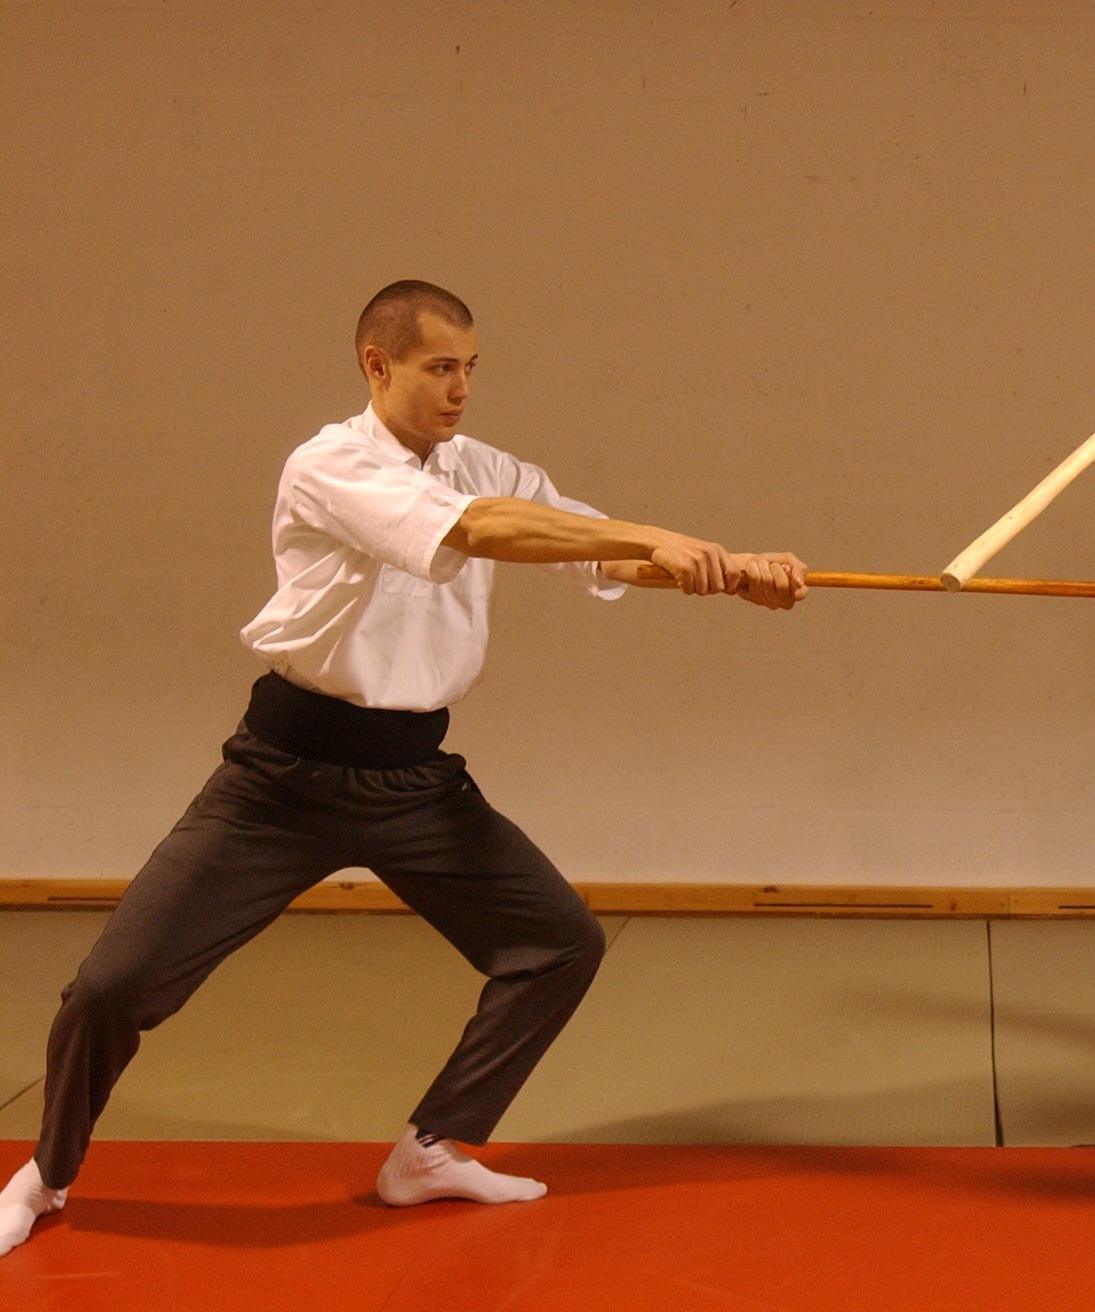 Finishing a strike from left to right and thus being slightly off balanced towards the right side